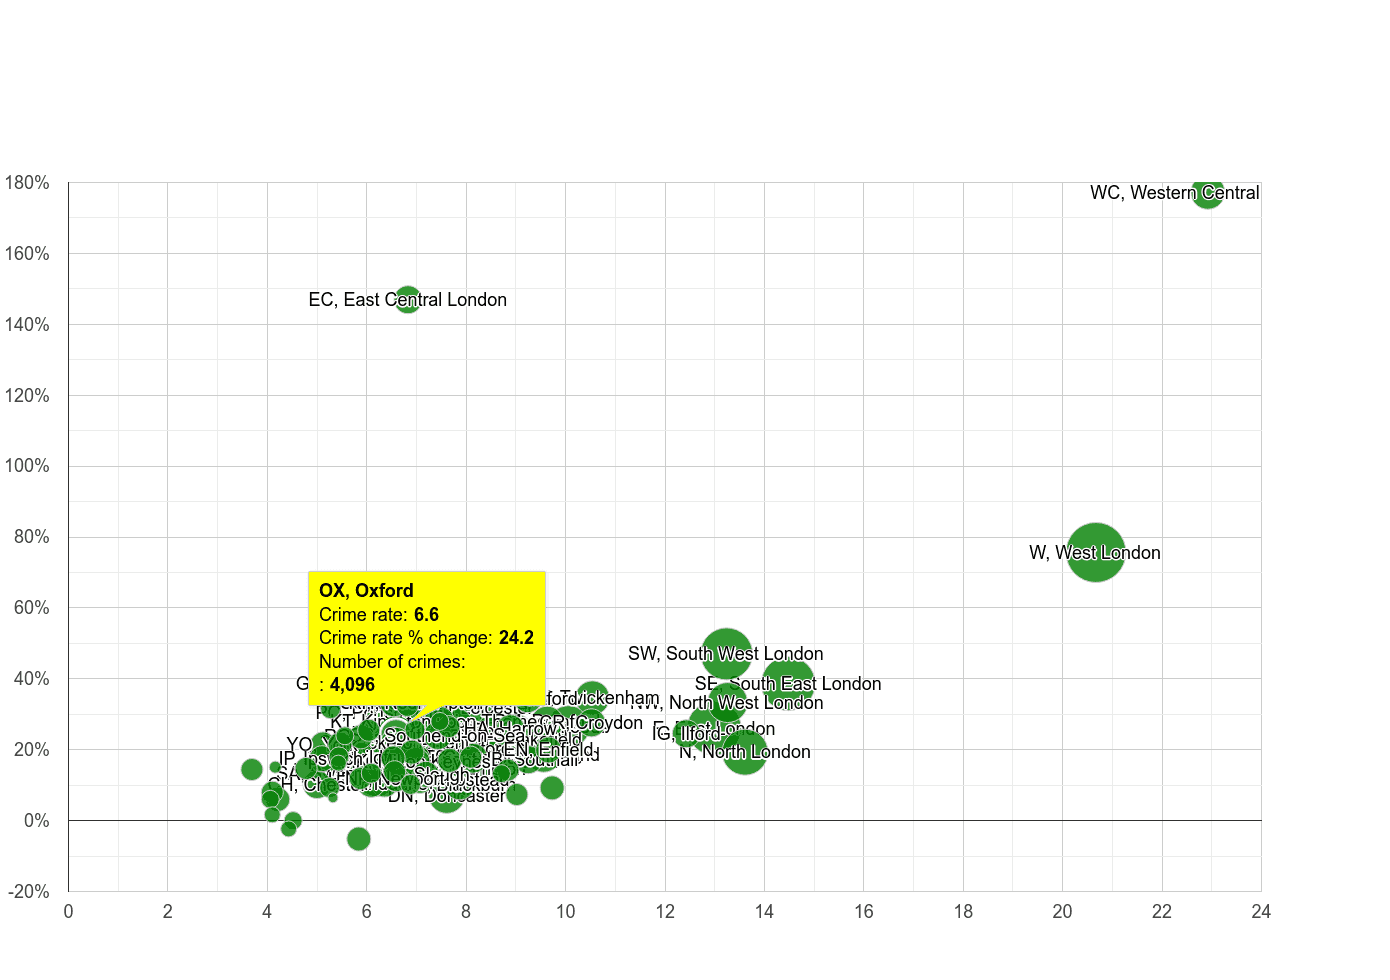 Oxford other theft crime rate compared to other areas